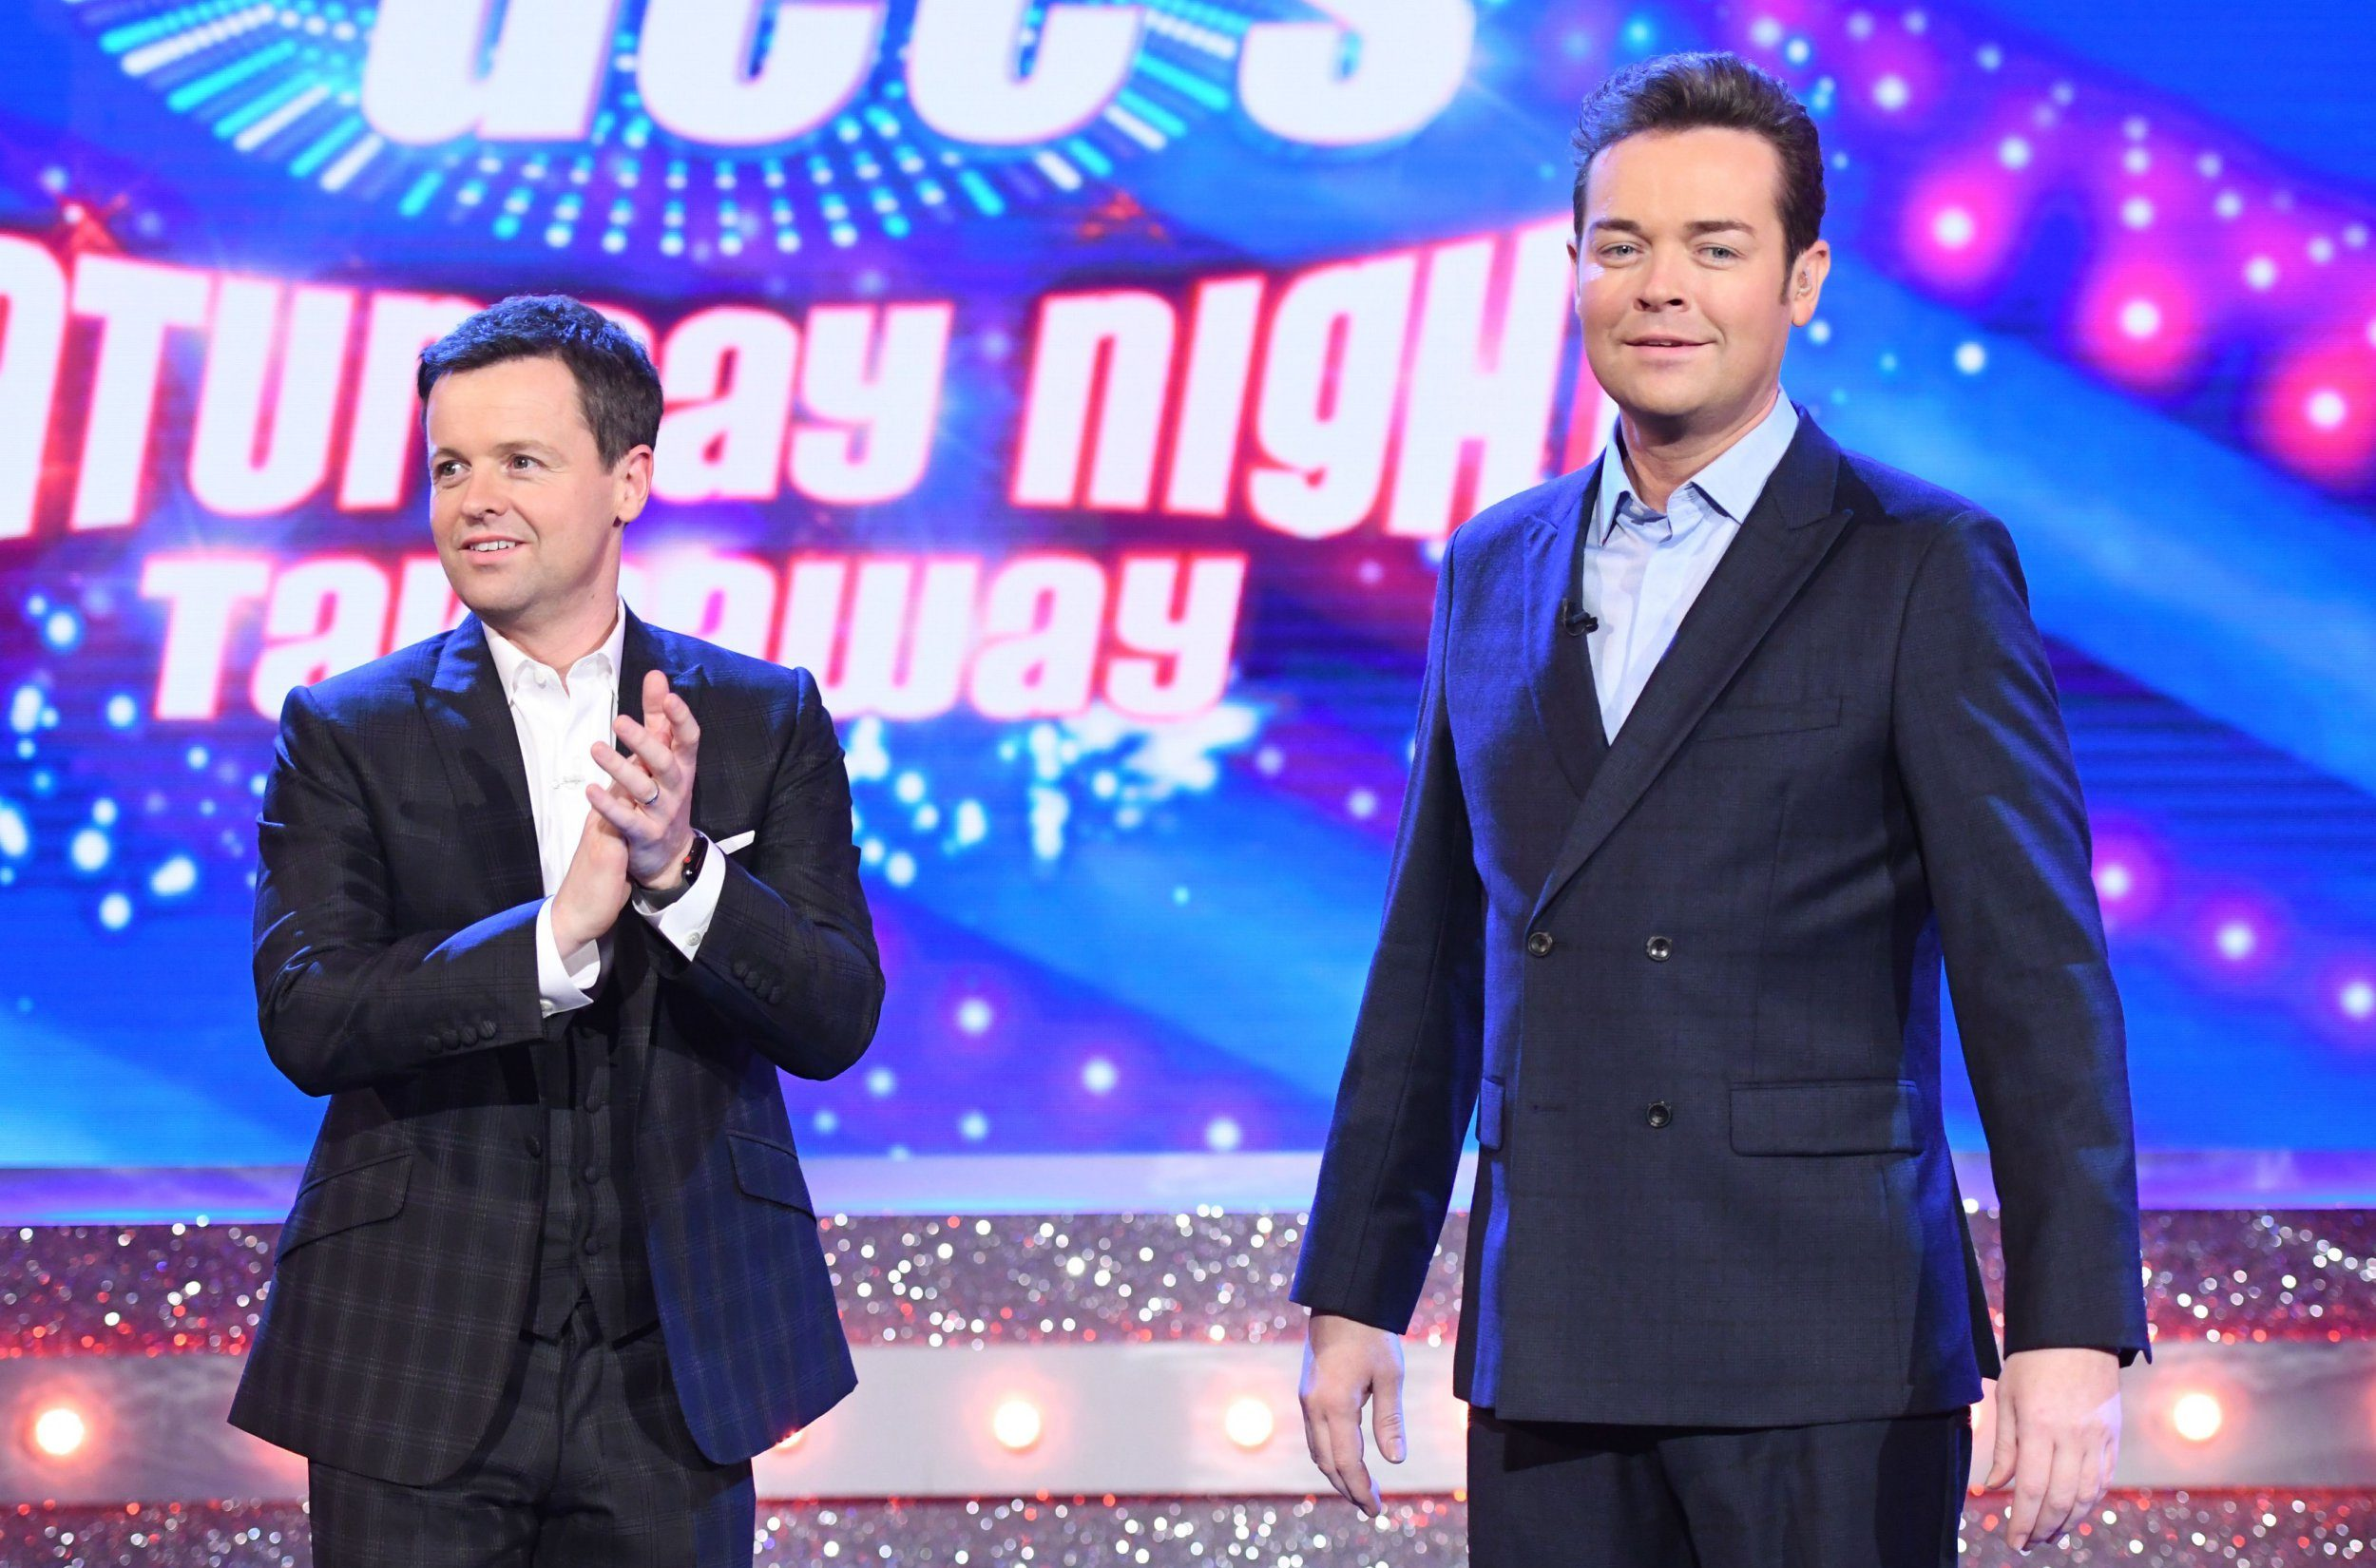 Stephen Mulhern praises 'incredible' Declan Donnelly for going it alone on Saturday Night Takeaway